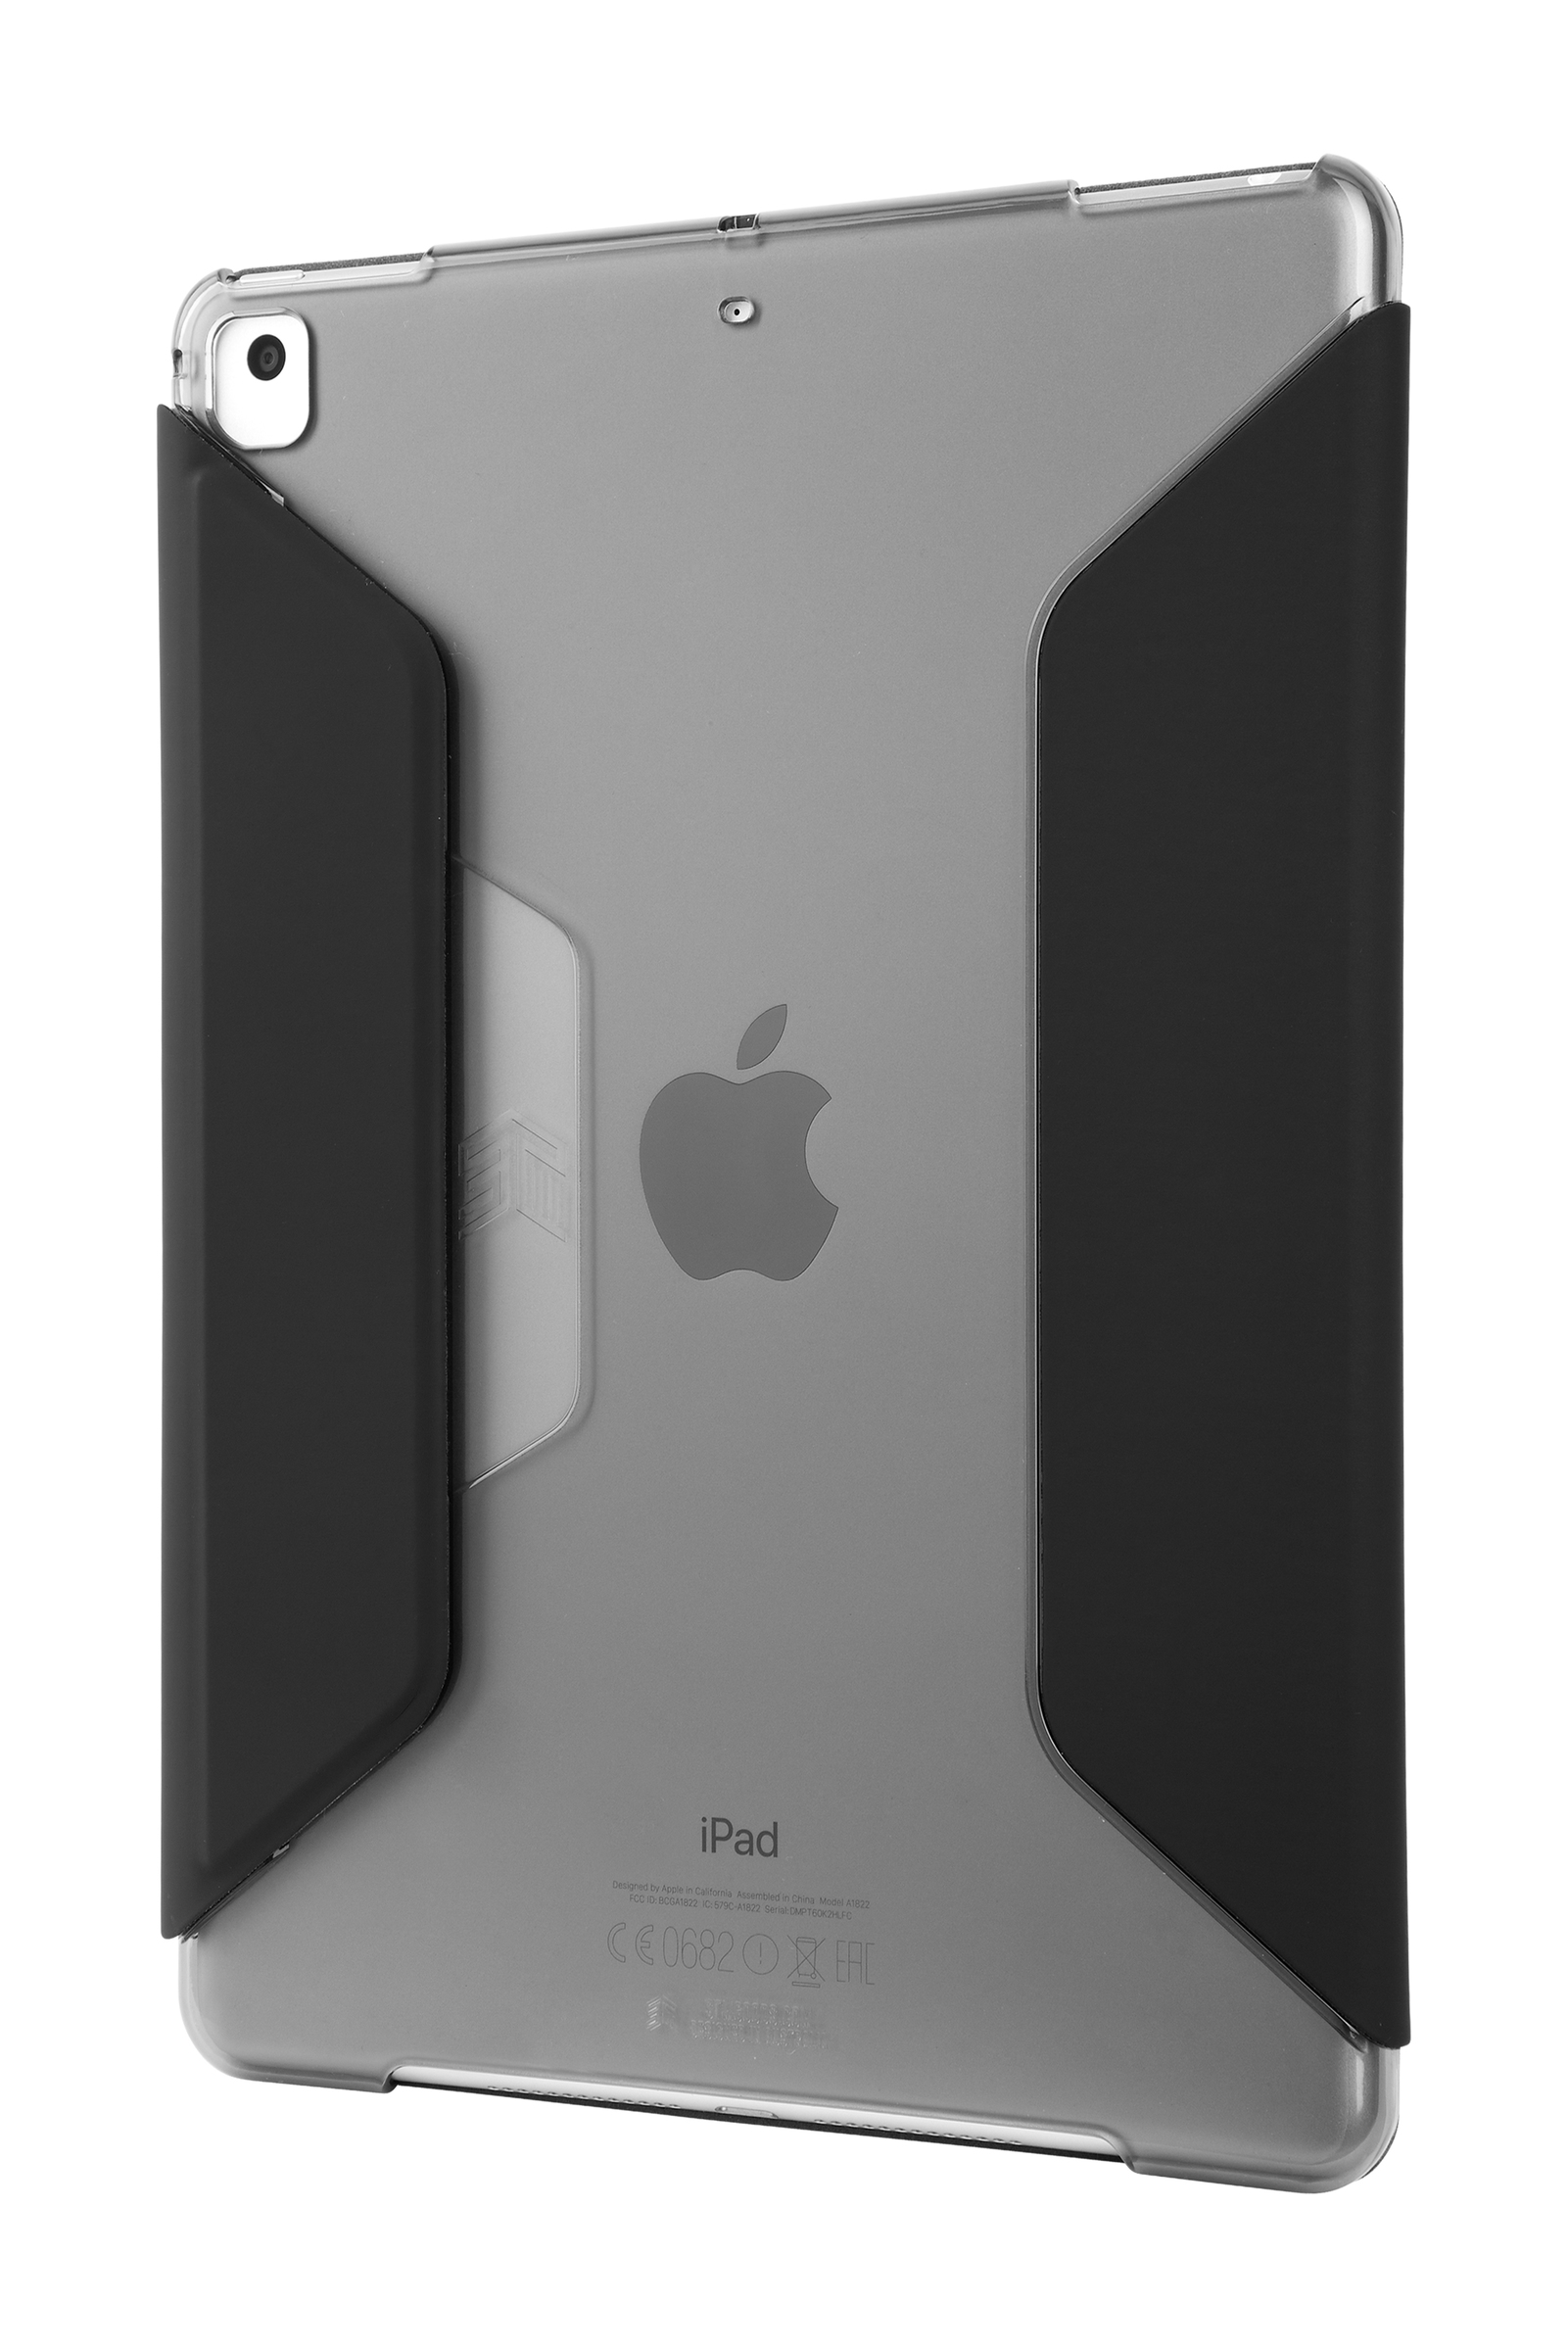 STM-2017-Studio-iPad-5thGen-Black-Rear-Angle-L.jpg